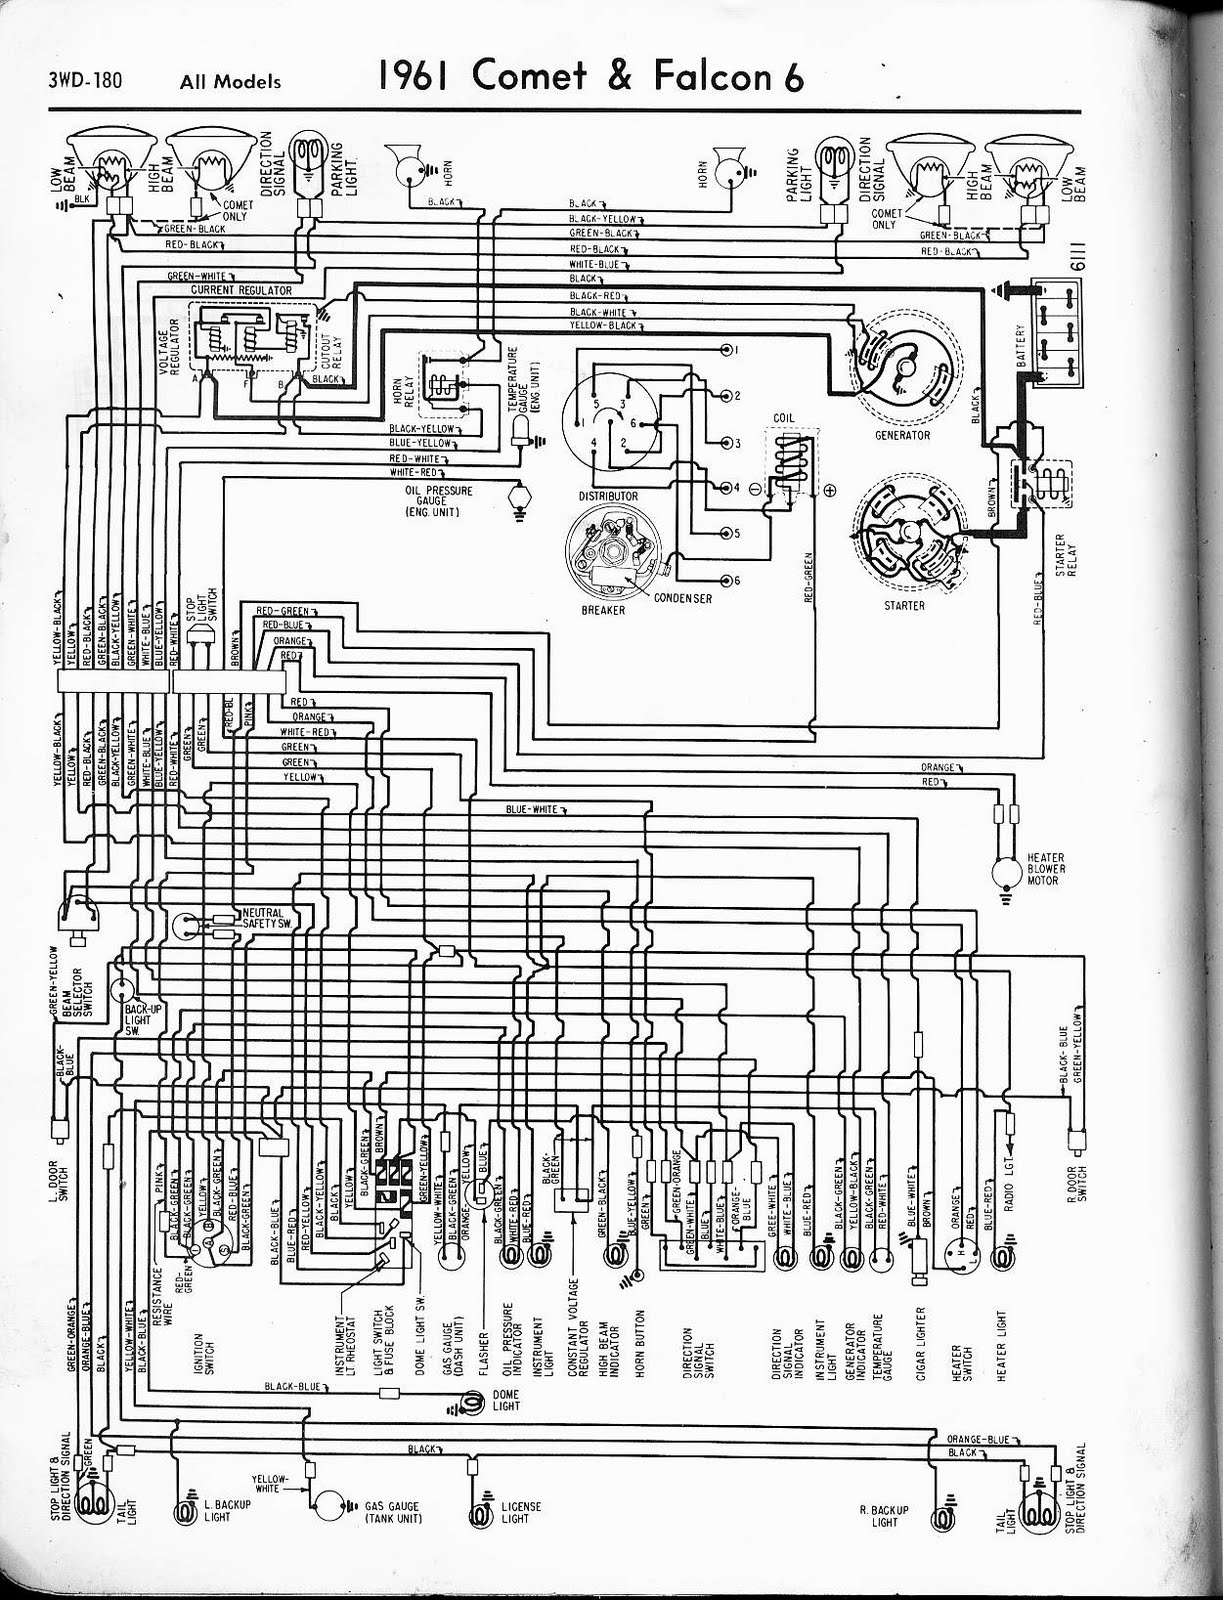 Free Auto Wiring Diagram: 1961 Ford Falcon & Comet Wiring Diagram